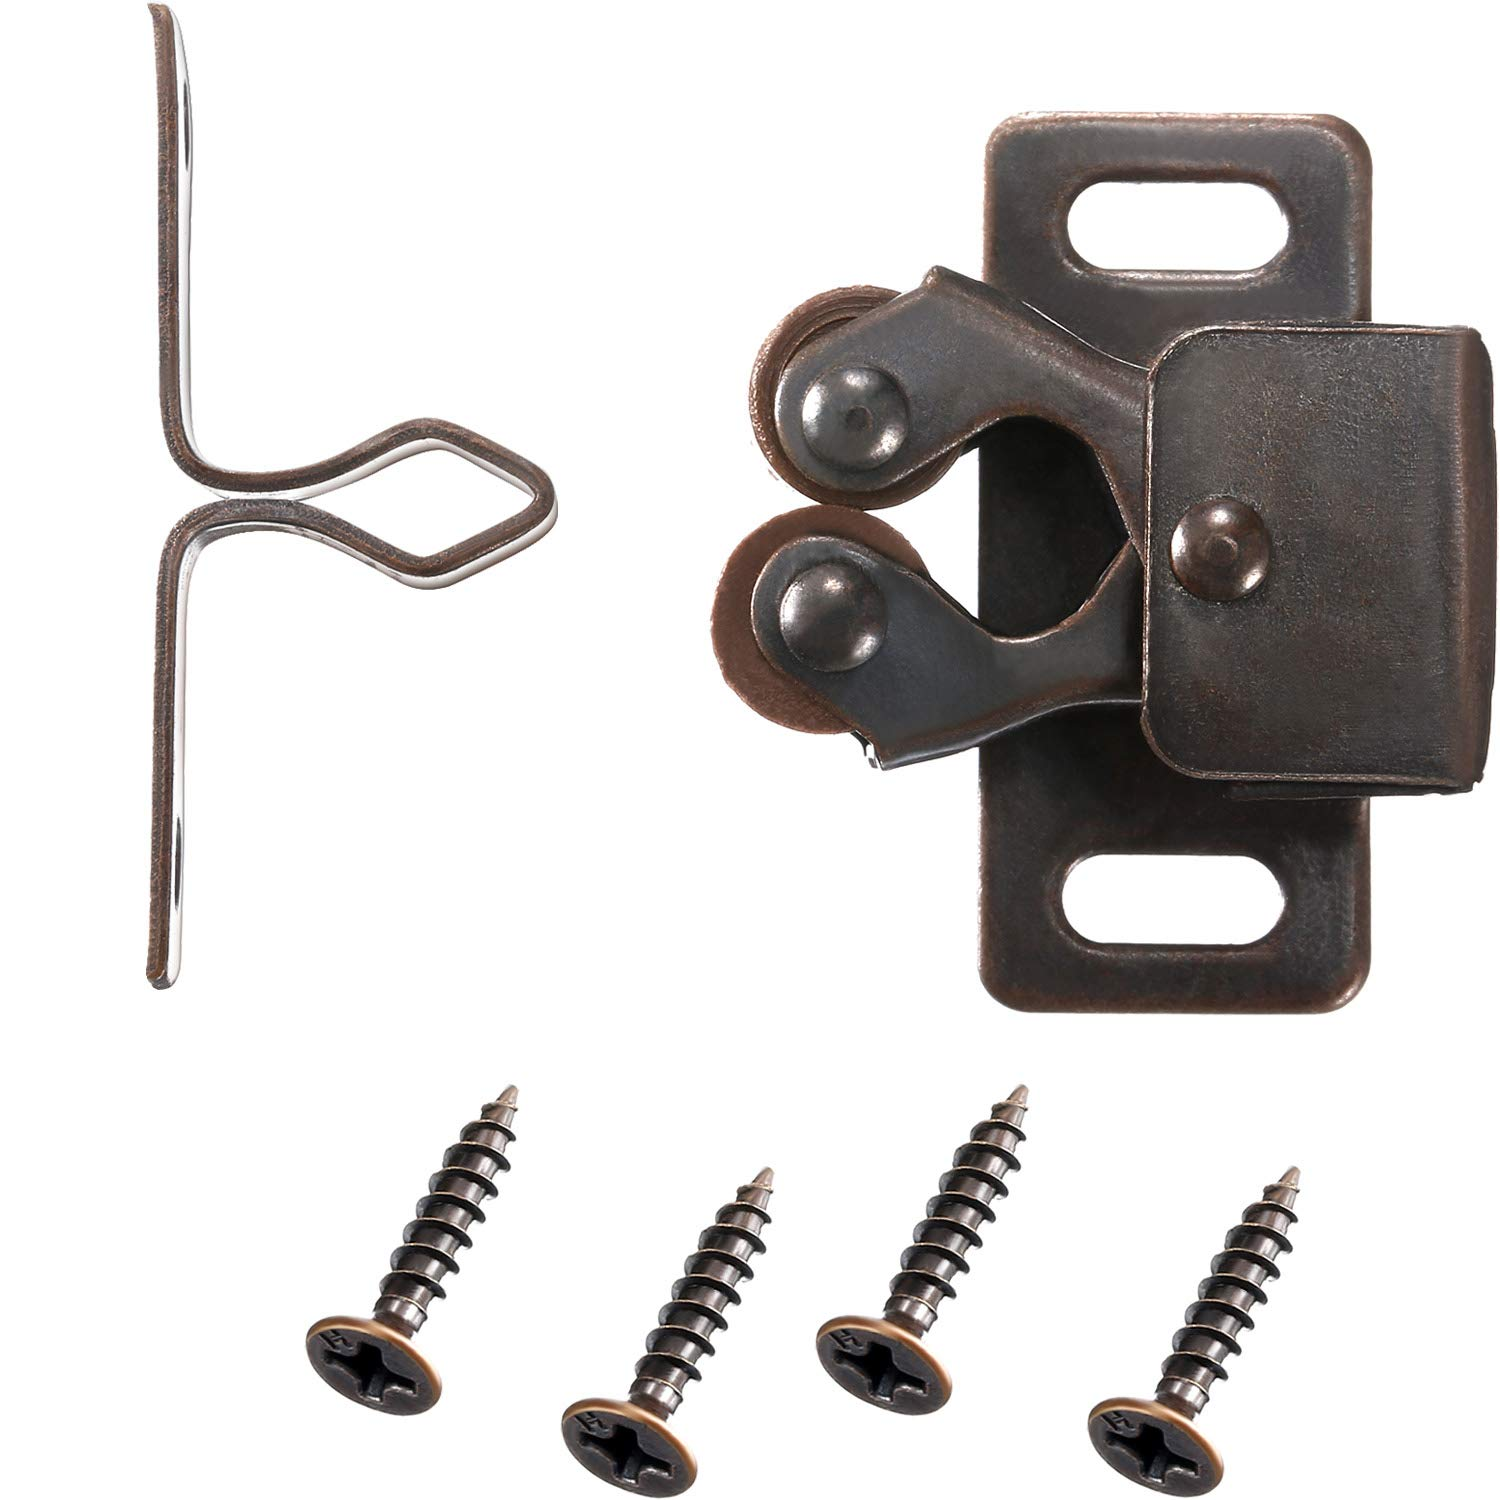 Gejoy 24 Pack Double Roller Catch for Closet Door and Cabinet Hardware Catch in Oil-Rubbed Bronze